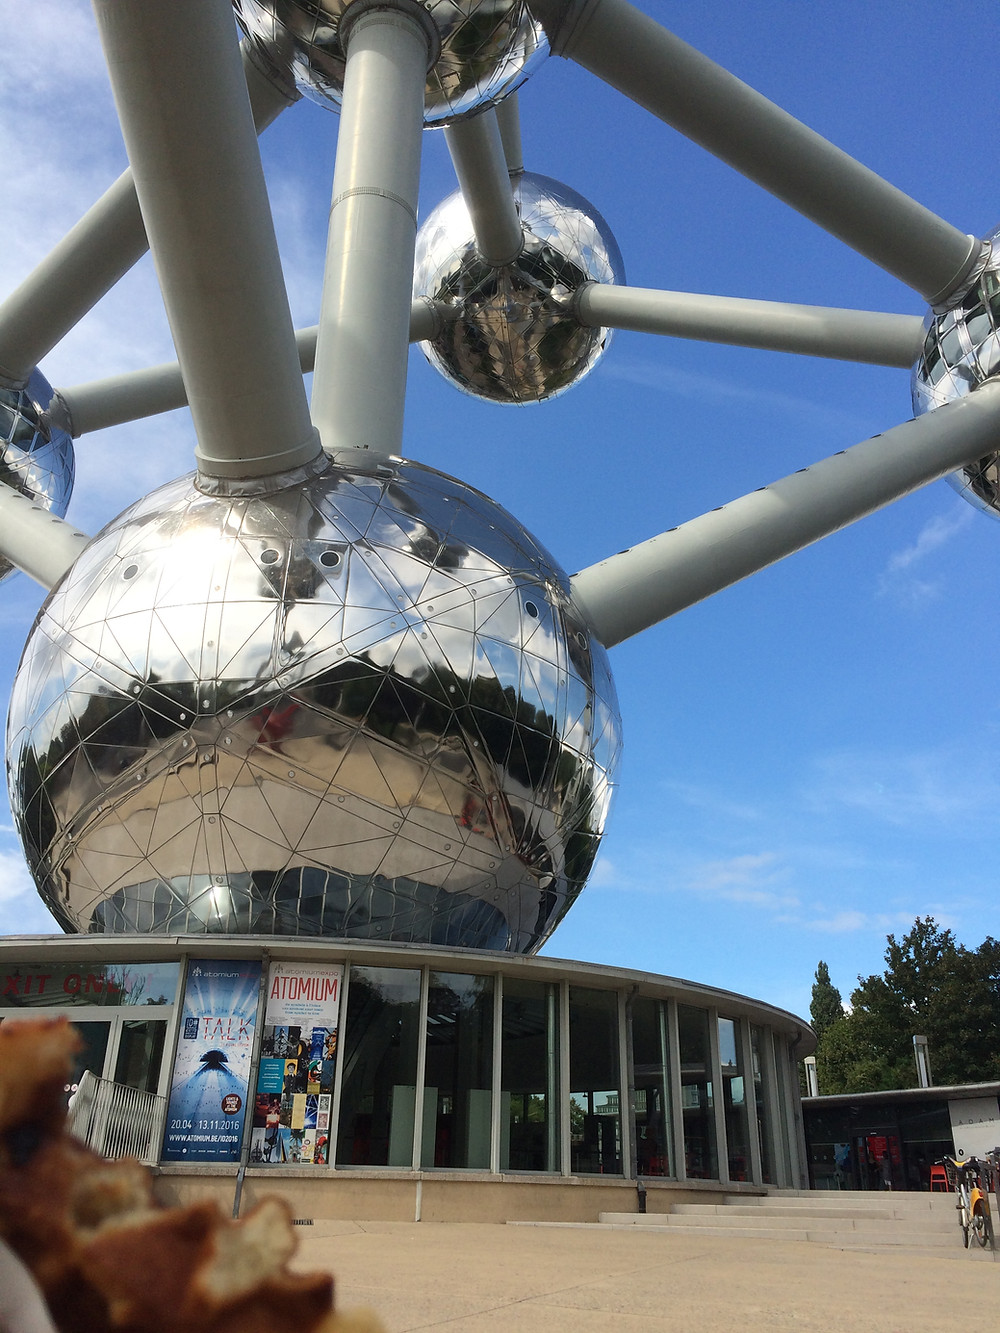 Enjoying a waffle at the Atomium!